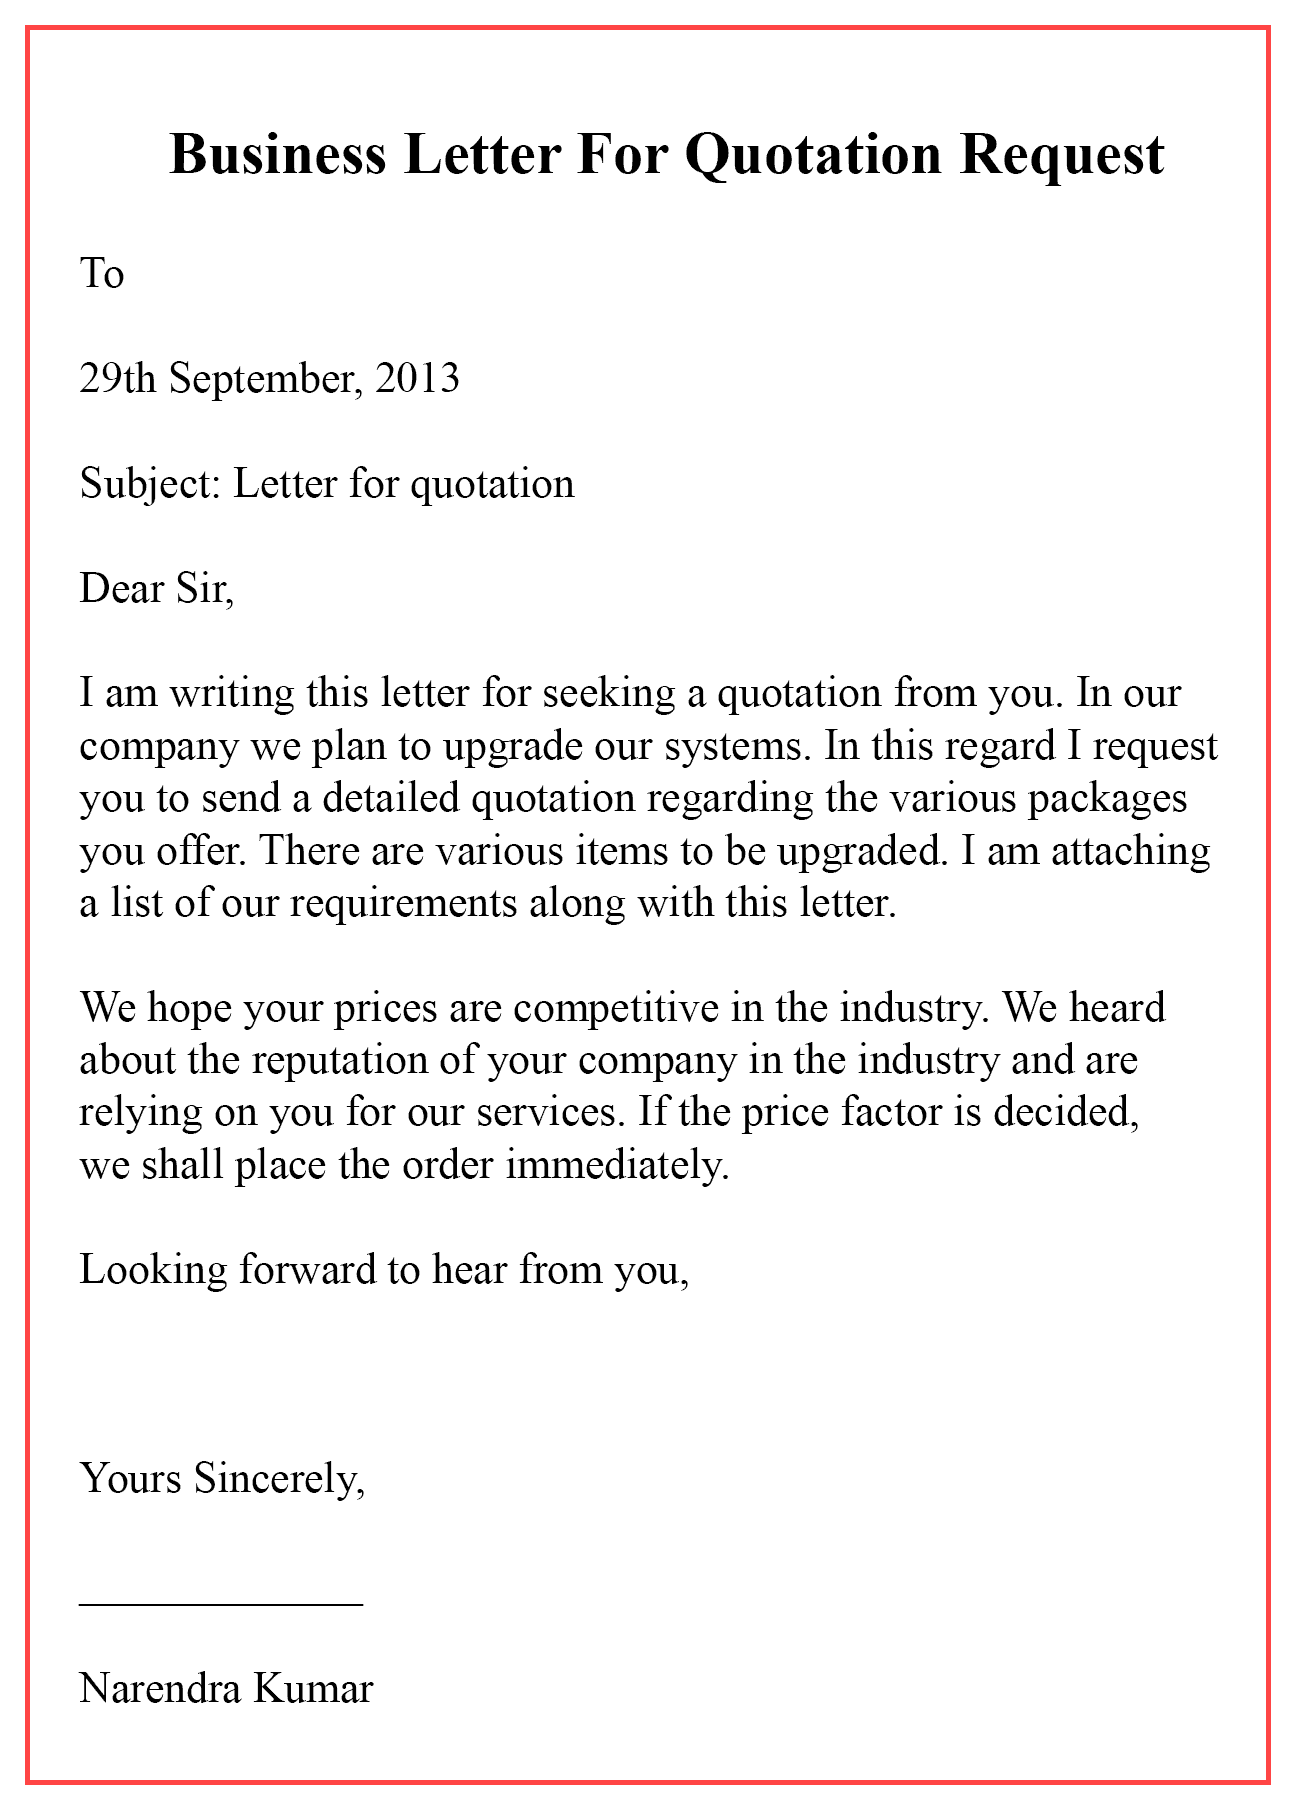 Business Letter For Quotation Request